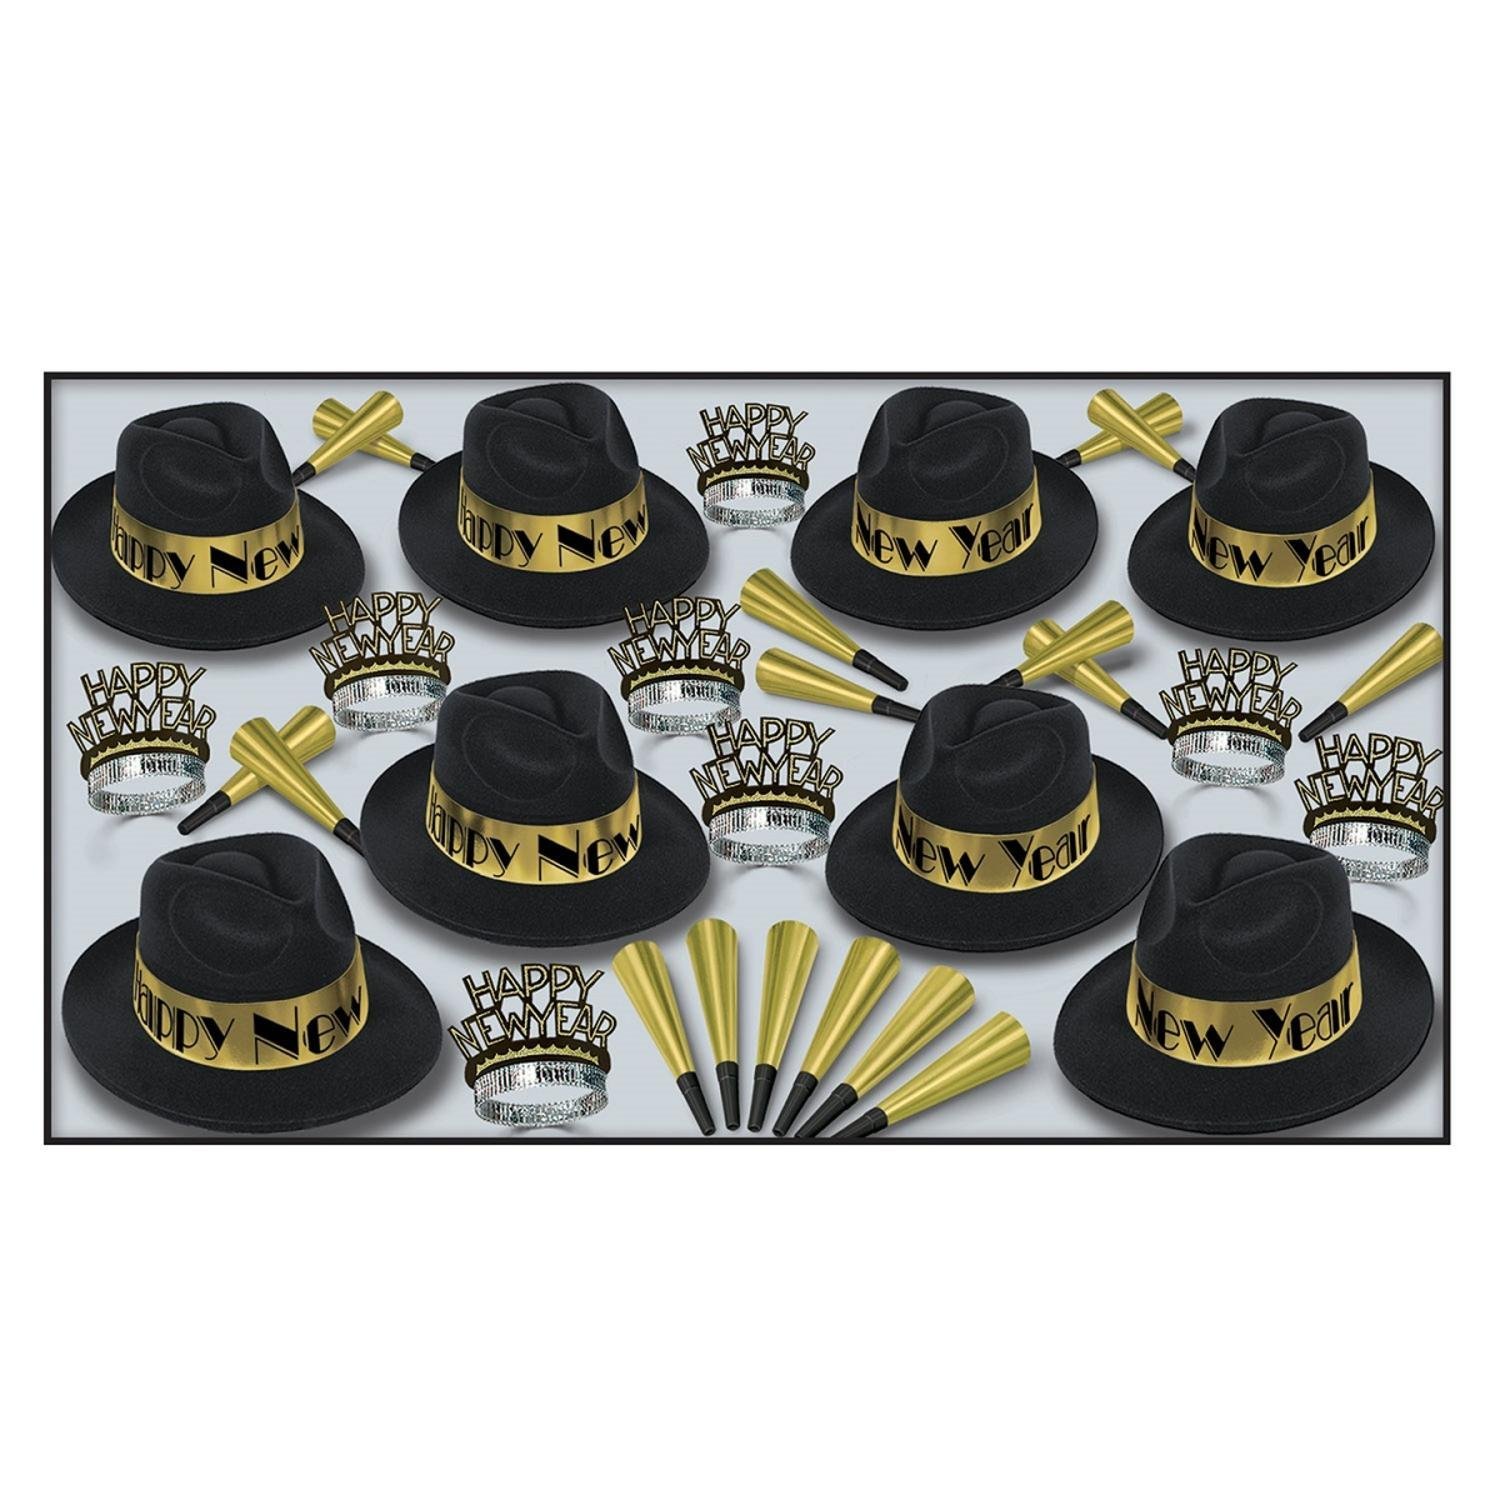 The Swing Gold Party Kit For 50 People For New Year's Eve by Party Central